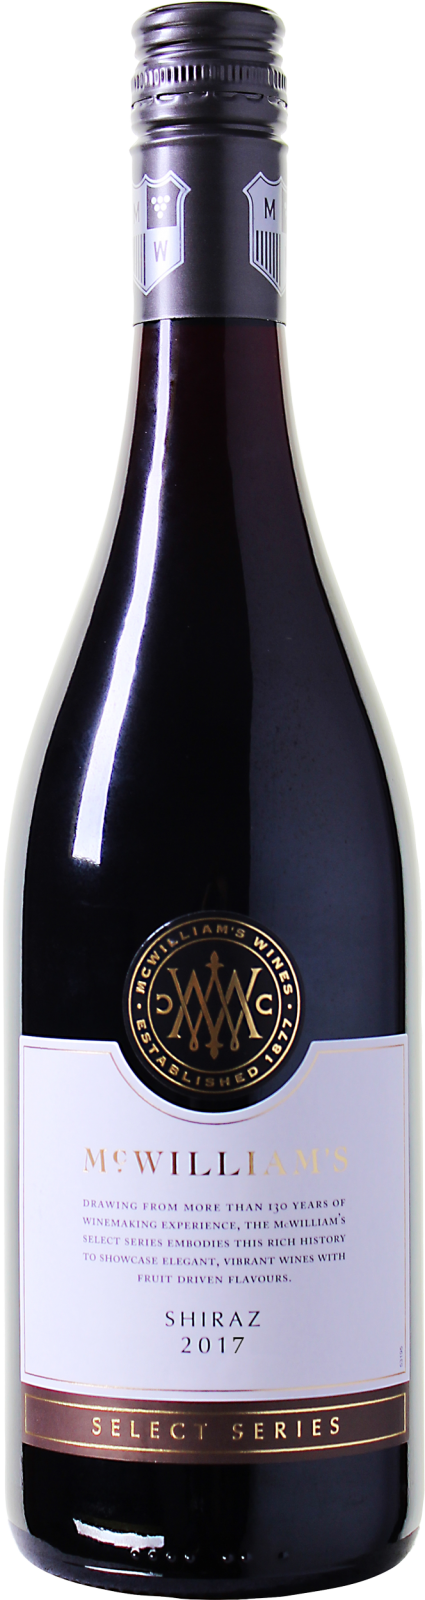 Mc William's Shiraz